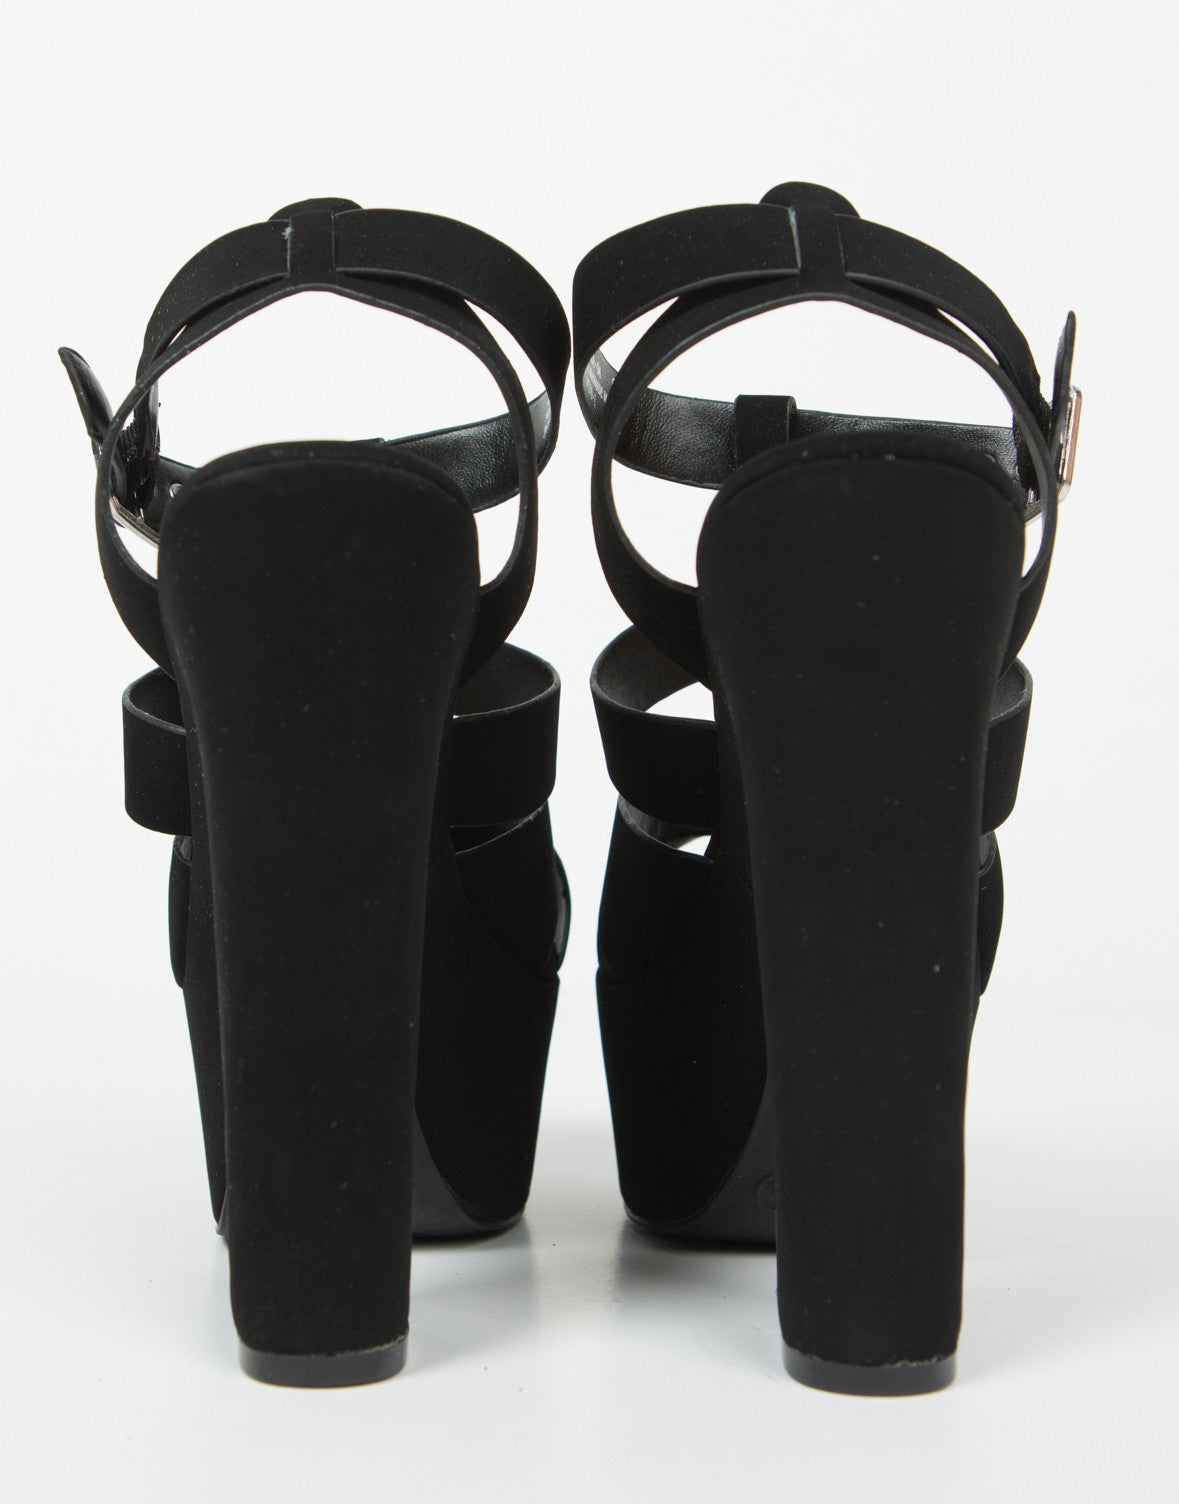 Back View of Cross Band Chunky Platform Heels